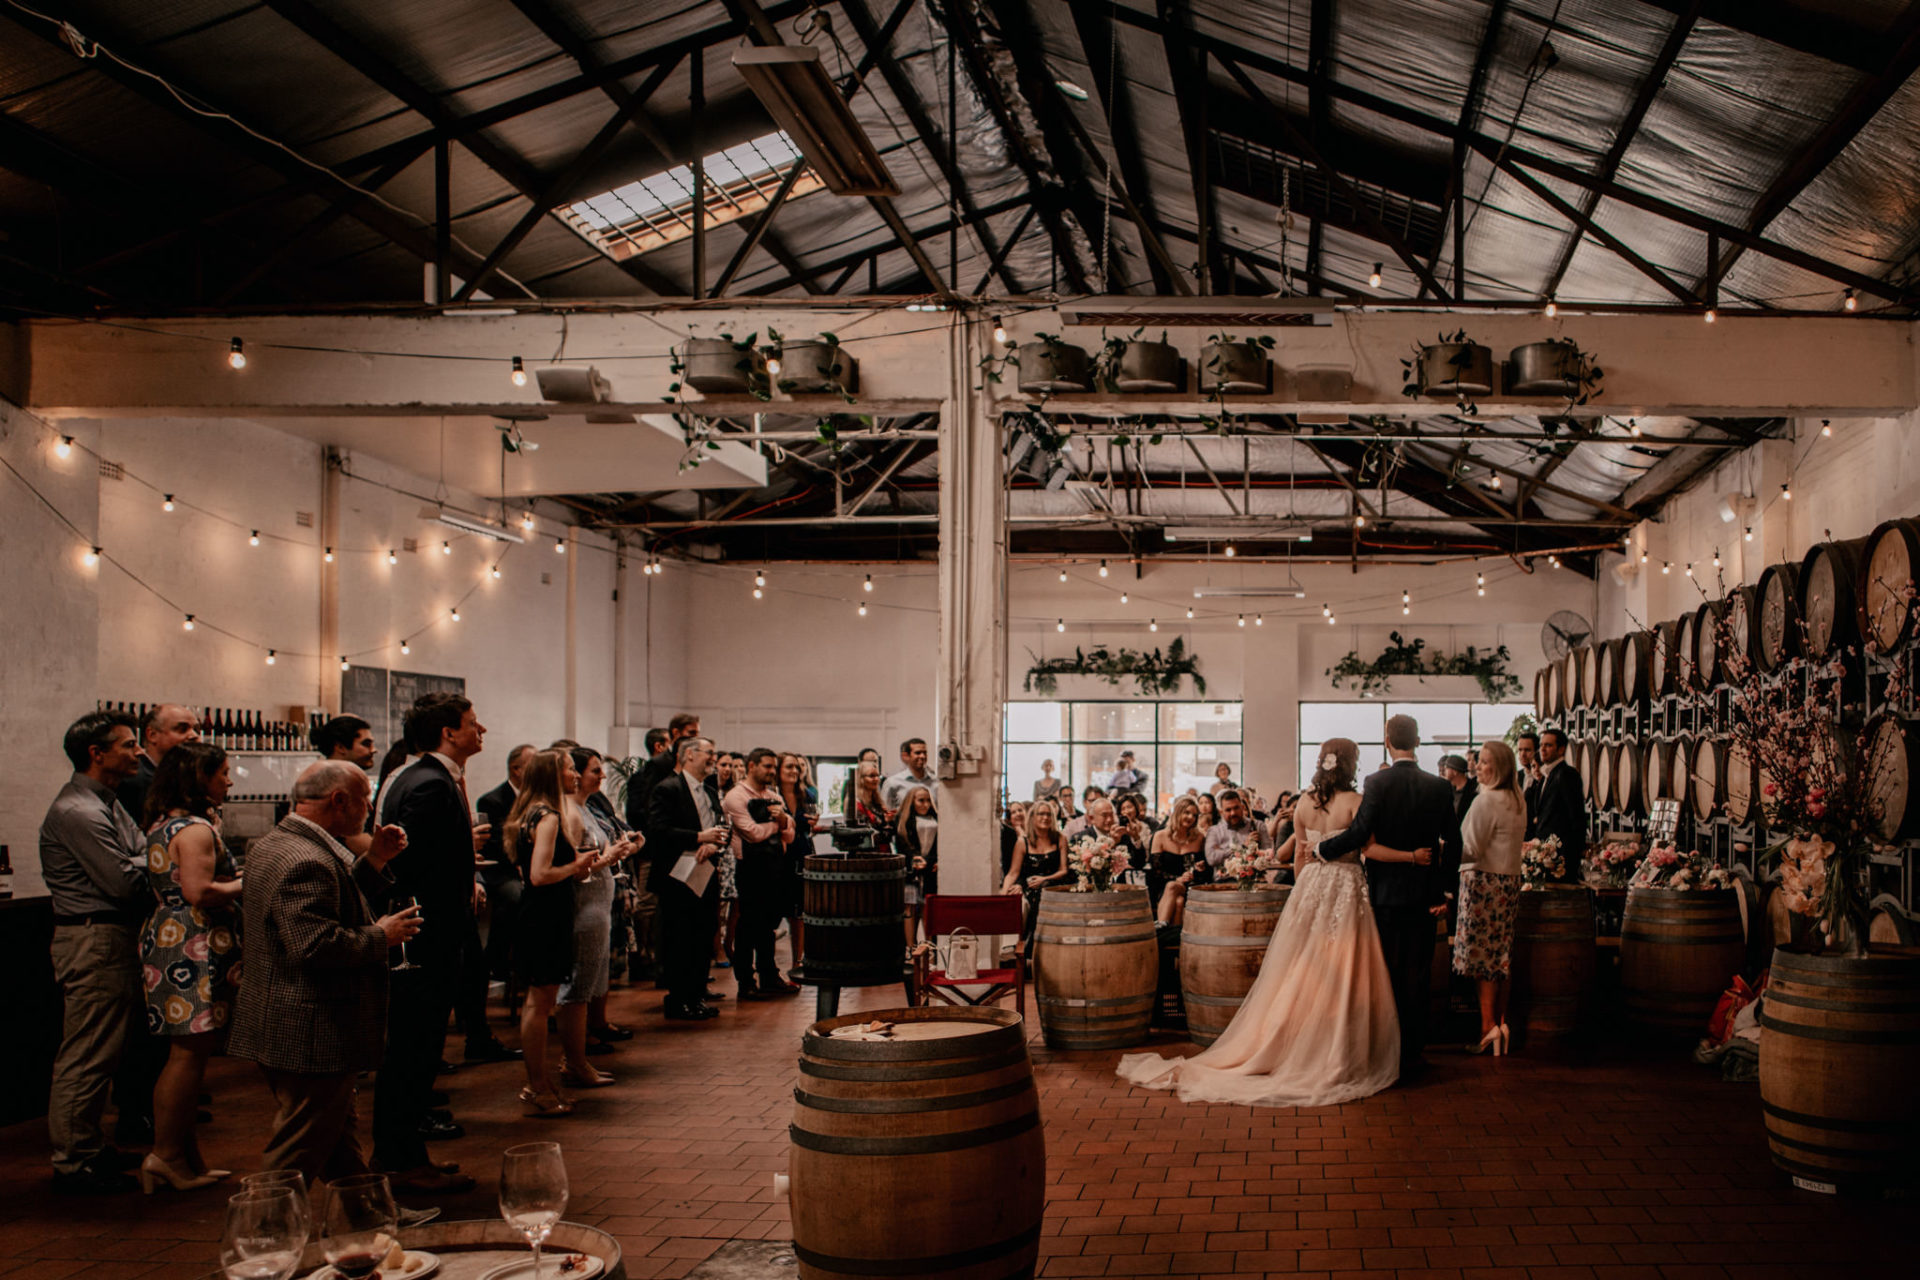 documentary wedding photographer melbourne-quirky rustic brunswick wedding-noisy rituals wedding photographer-east elevation reception location-bridal portraits st kilda-destination wedding australia-artistic wedding photography